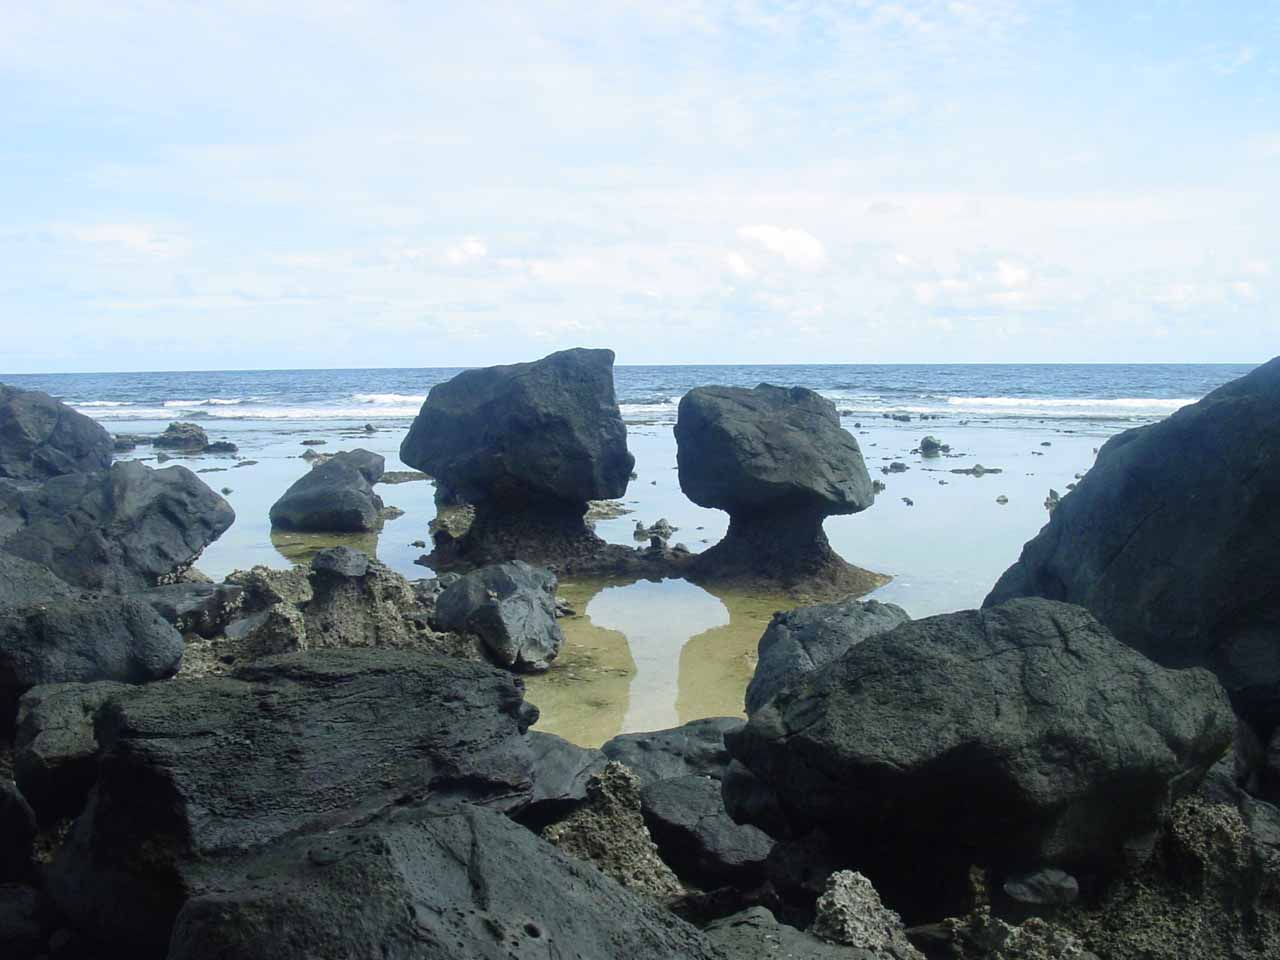 Further south along Taveuni's east coast from the Bouma National Park was the Lavena Coastal Walk, which allowed us to get close to these eccentric mushroom rock formations as well coastal scenery